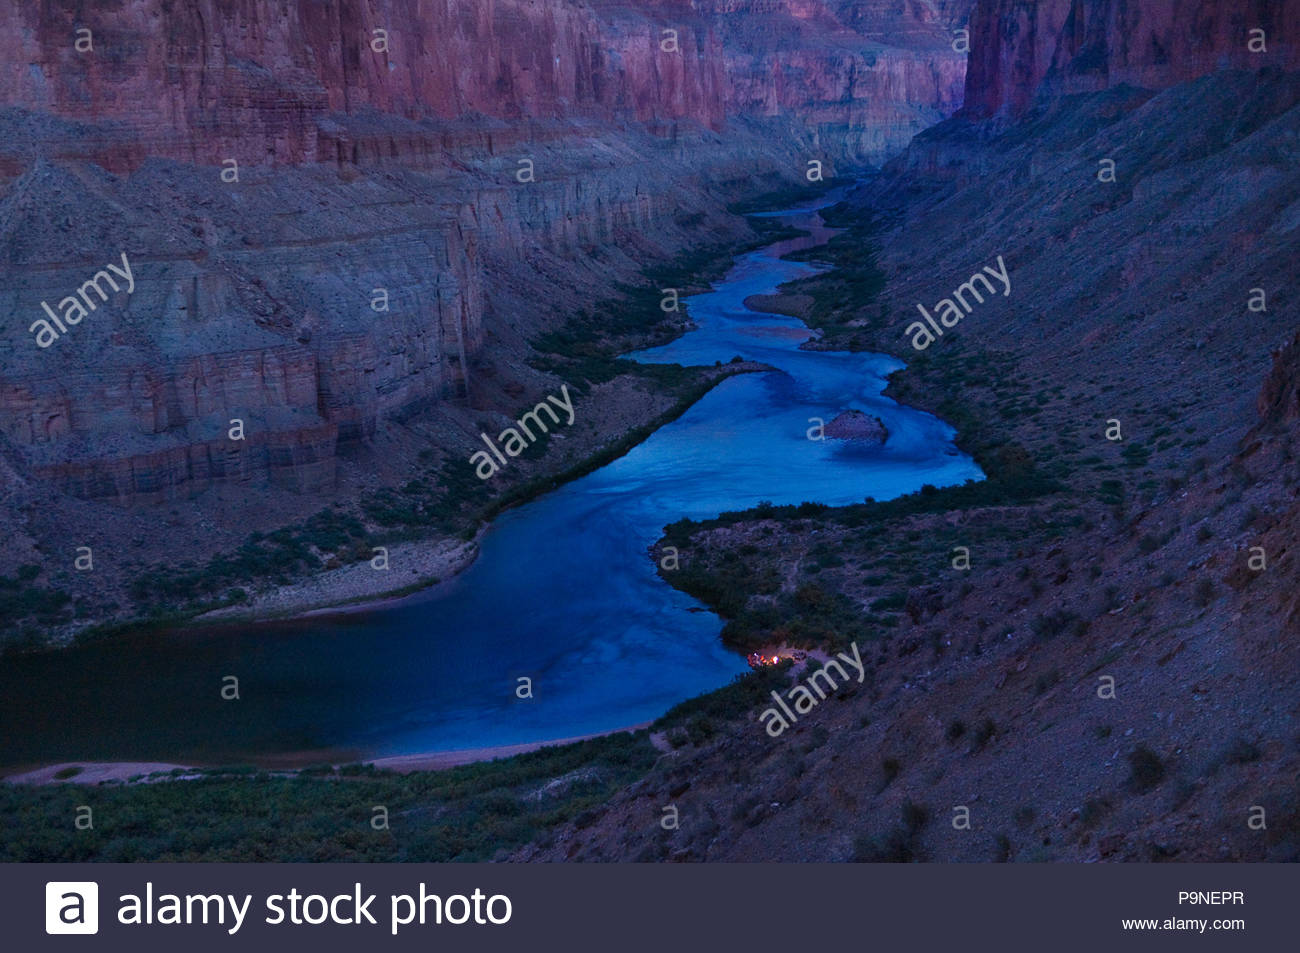 A boater's campfire from the Ancient Puebloan Nankoweap granaries. - Stock Image